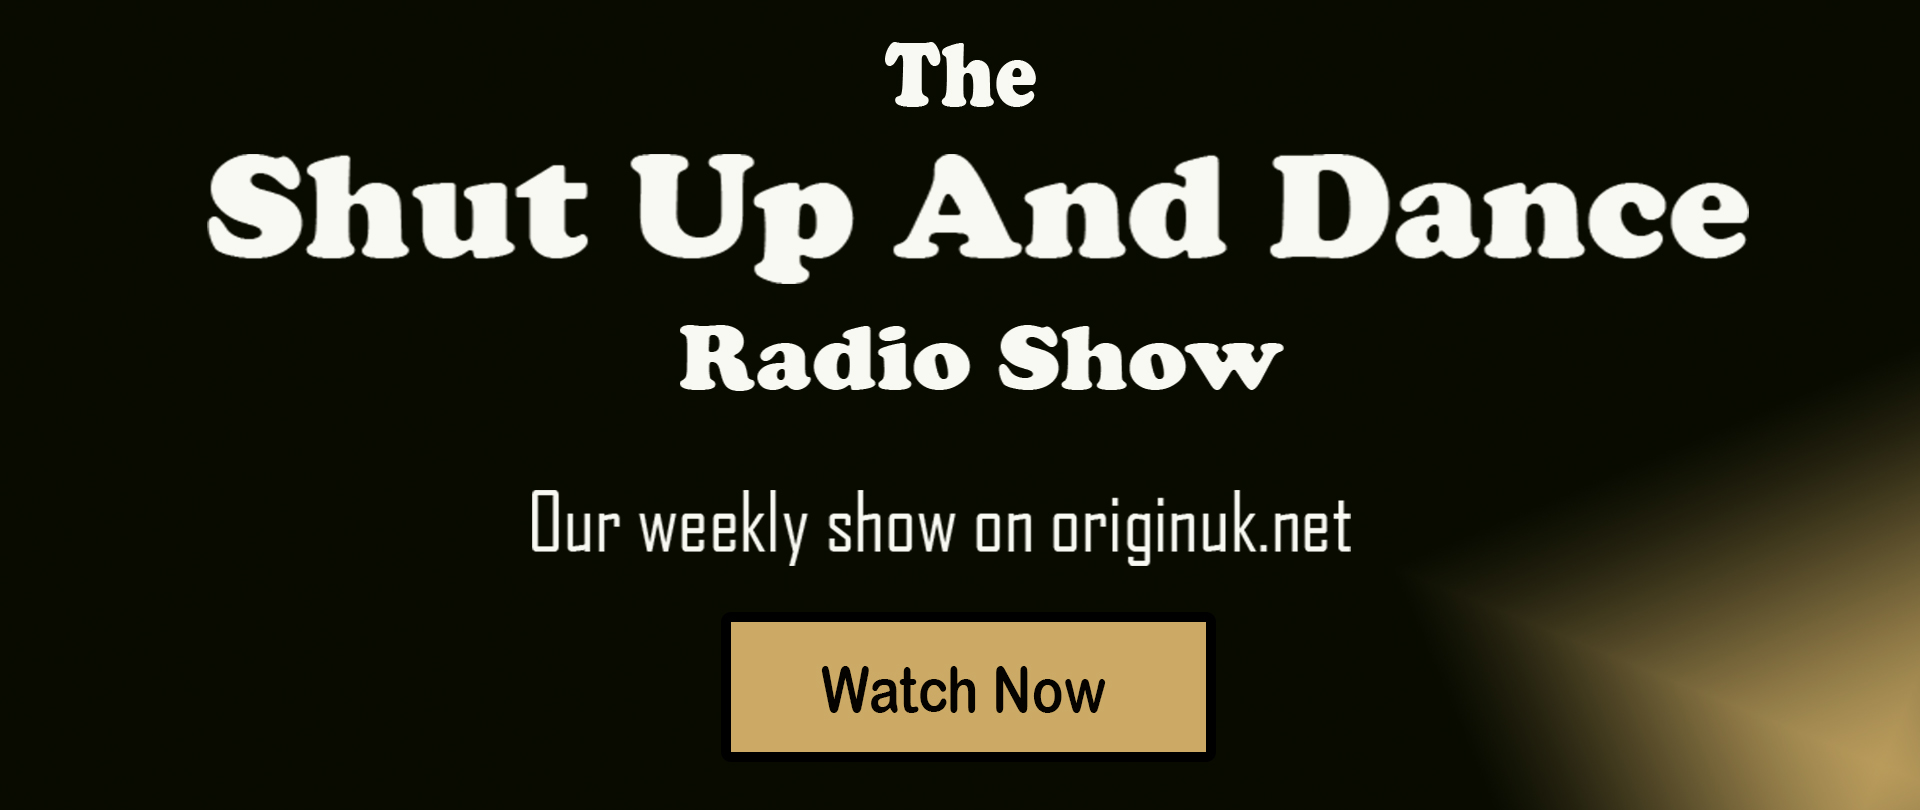 Shut Up and Dance Originuk Radio Show Front Page Banner